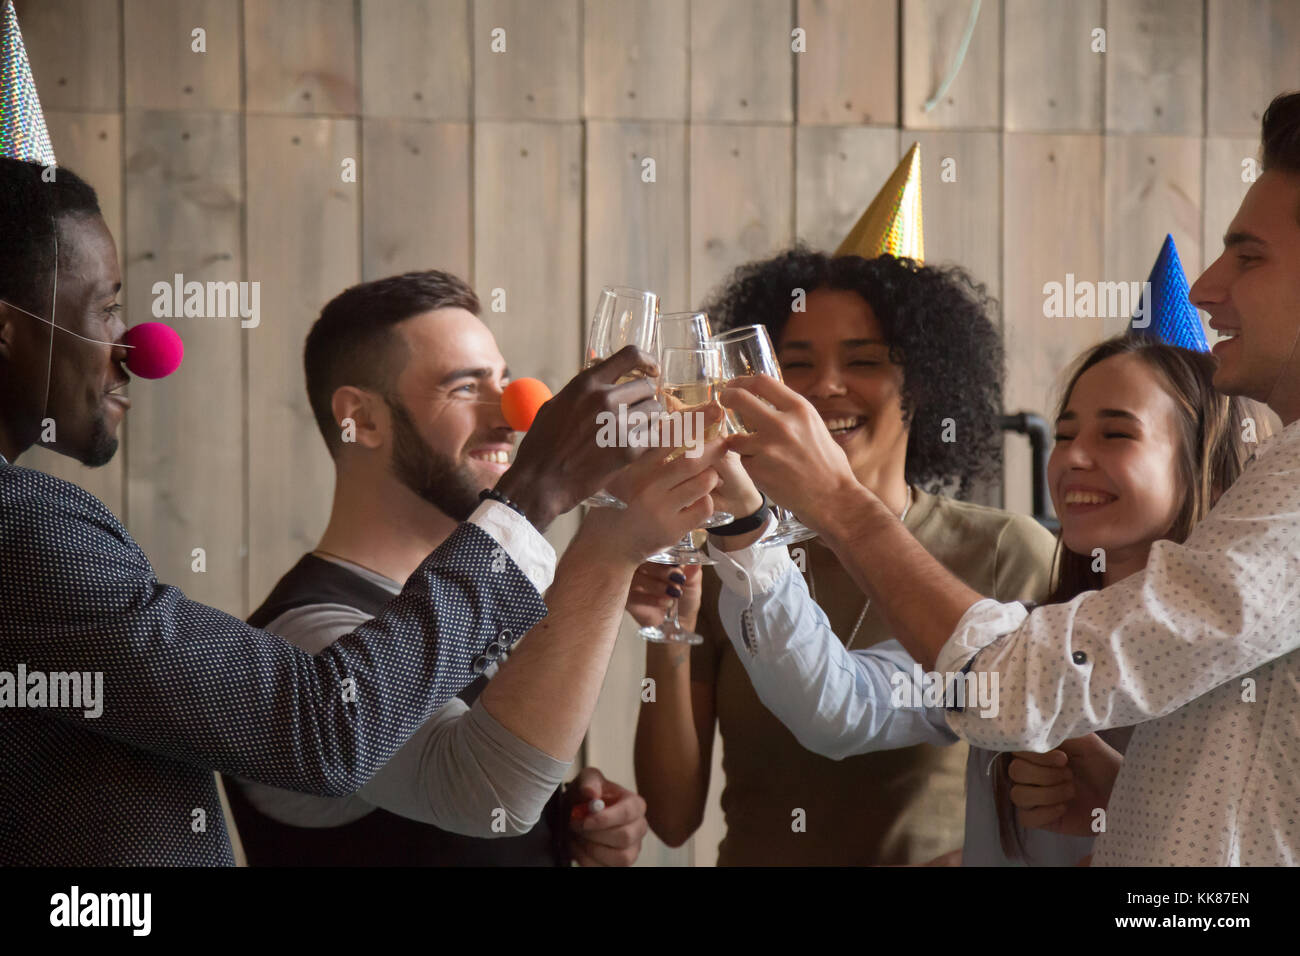 African and caucasian young friends clinking glasses celebrating - Stock Image